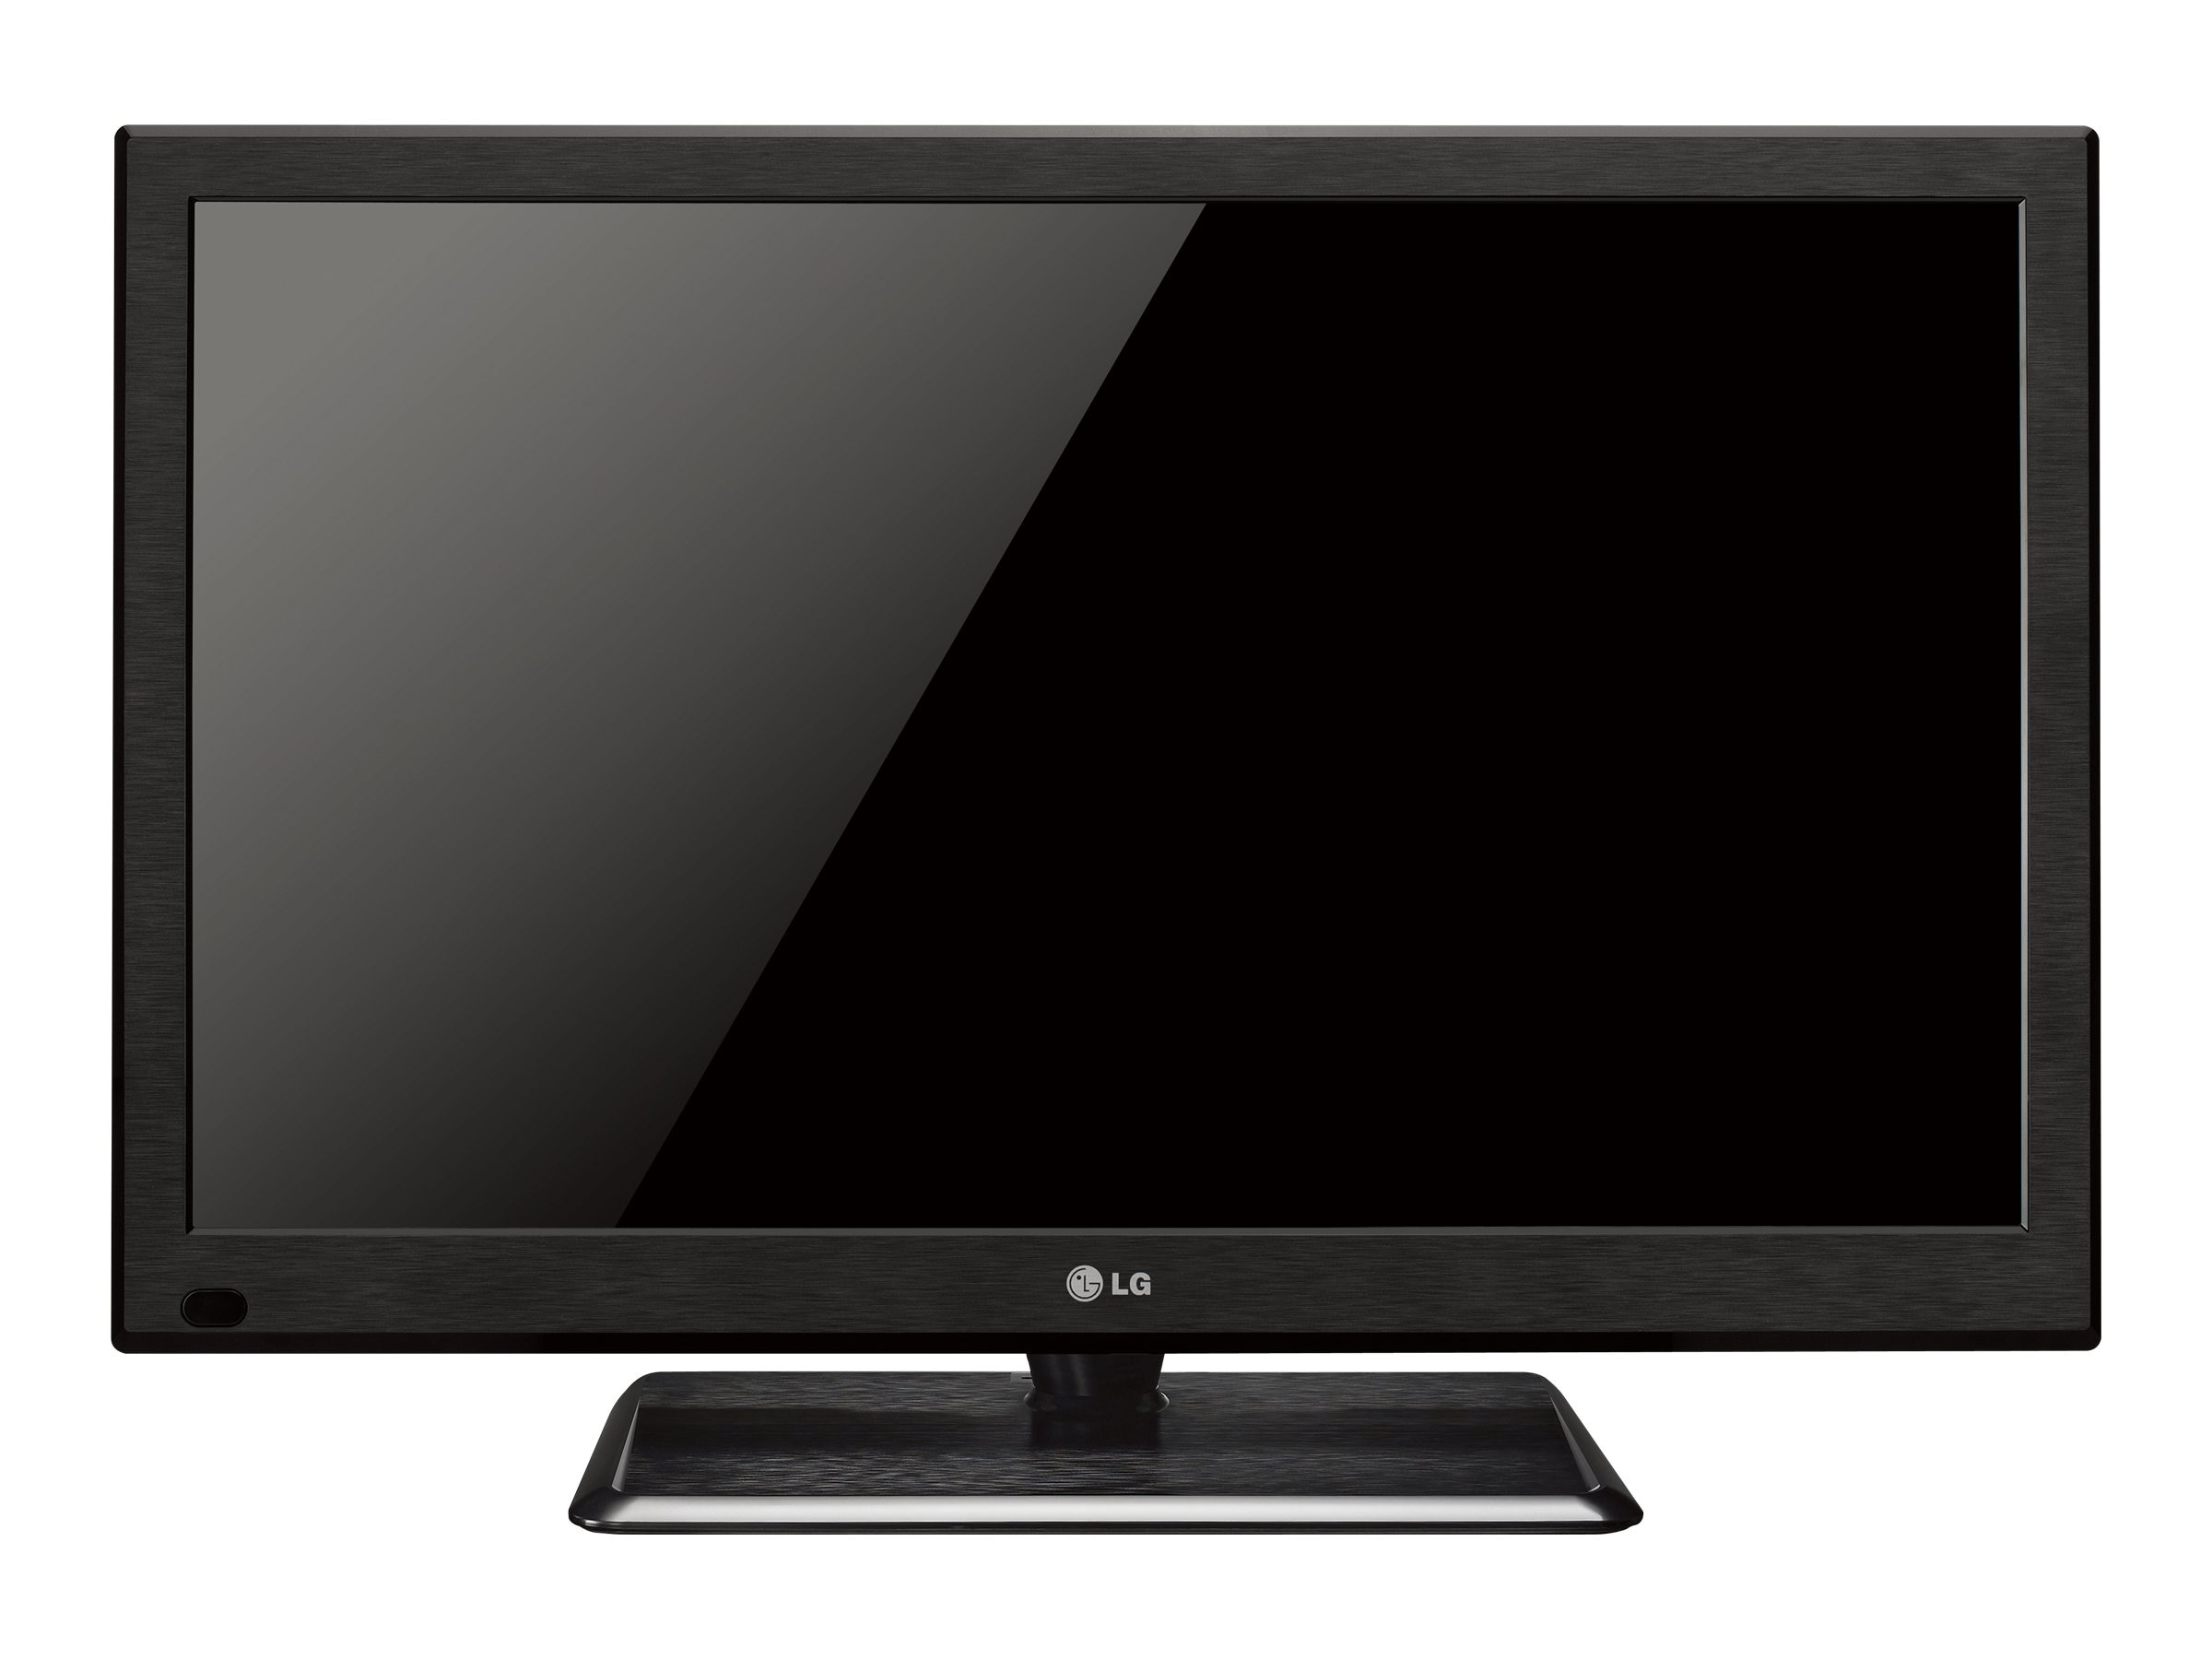 LG 42 LT777H LED-LCD Hospitality TV, Black, 42LT777H, 16526120, Televisions - LED-LCD Commercial